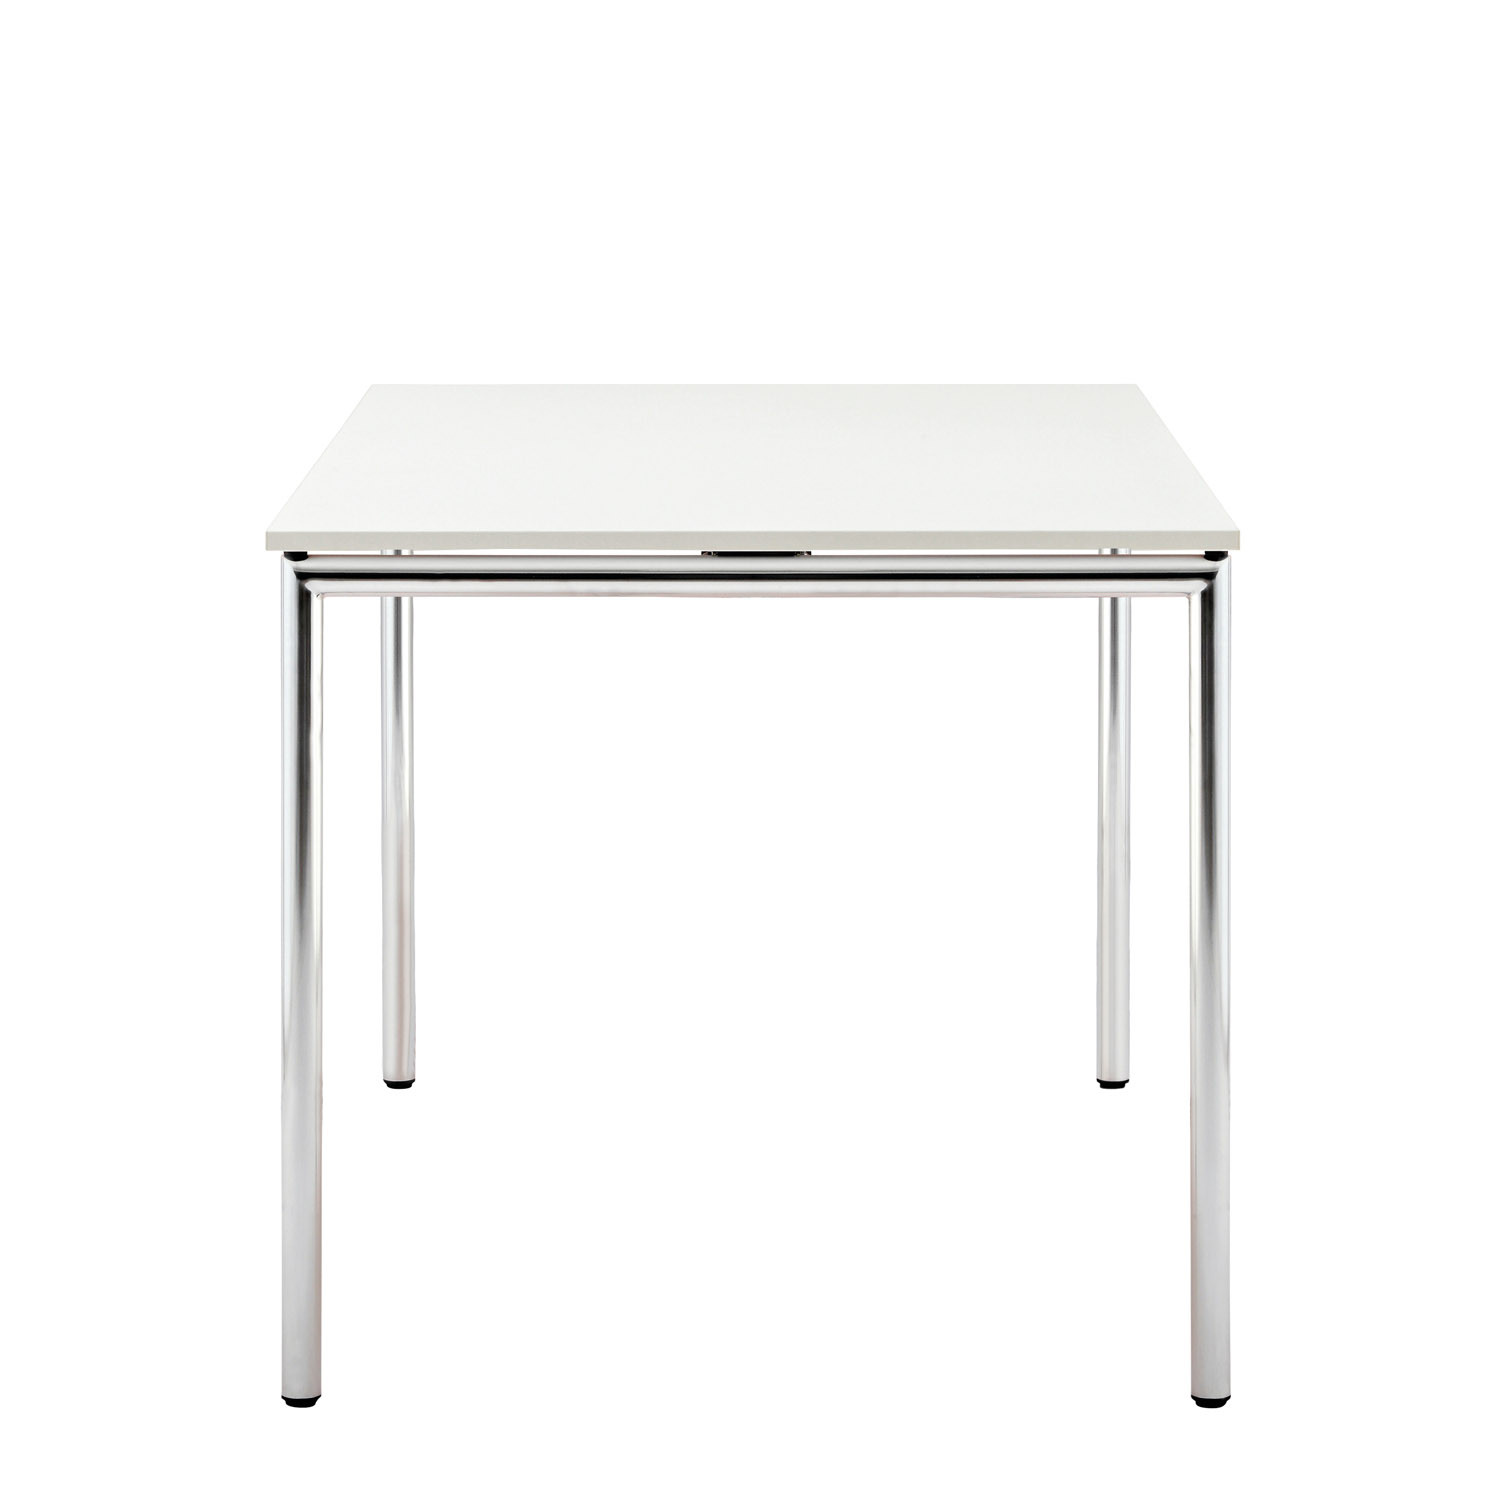 Usu Multifunctional Table